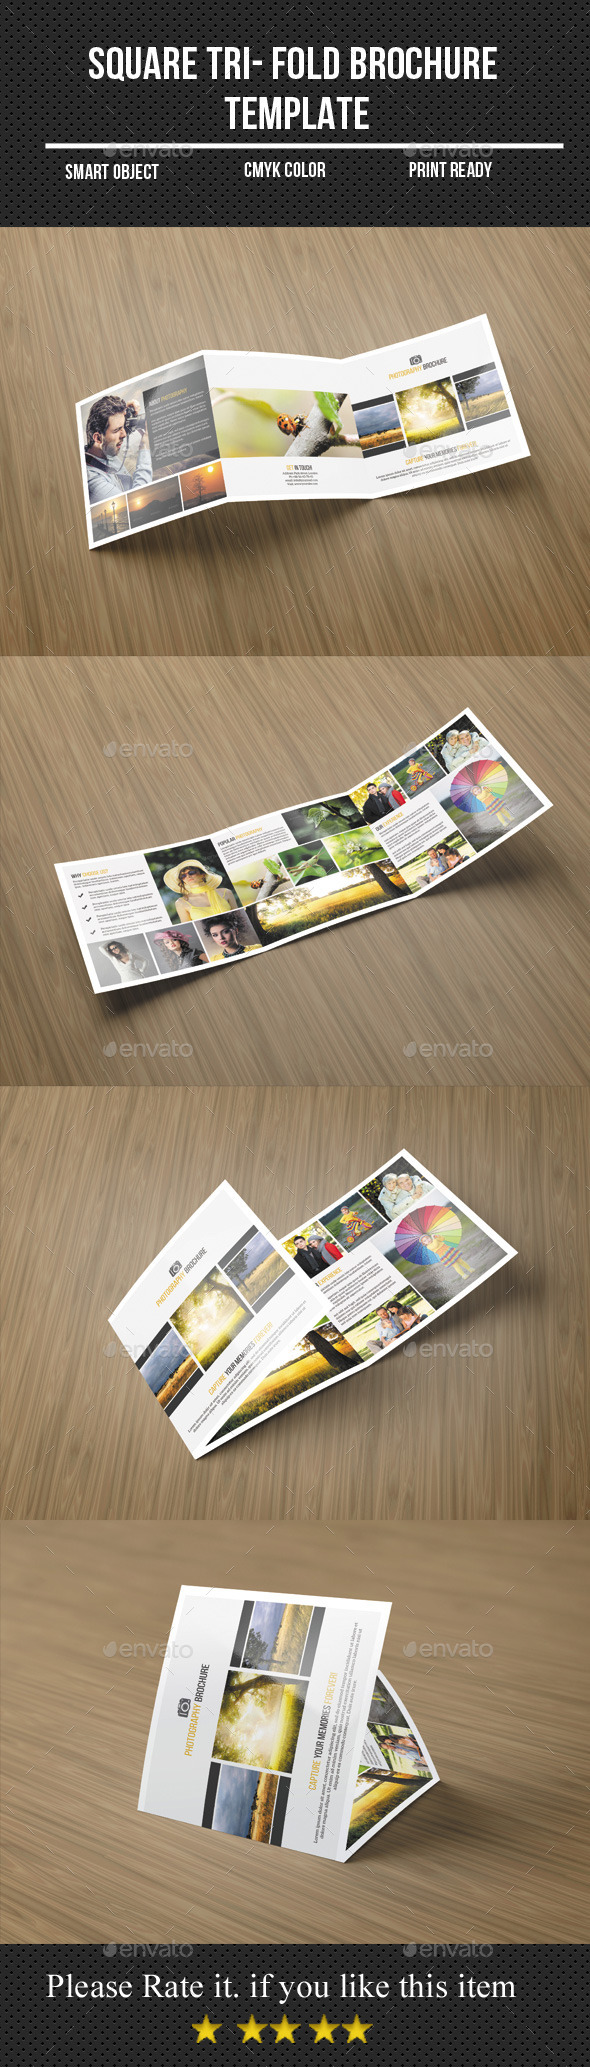 GraphicRiver Square Tri-Fold Photography Brochure 11399877